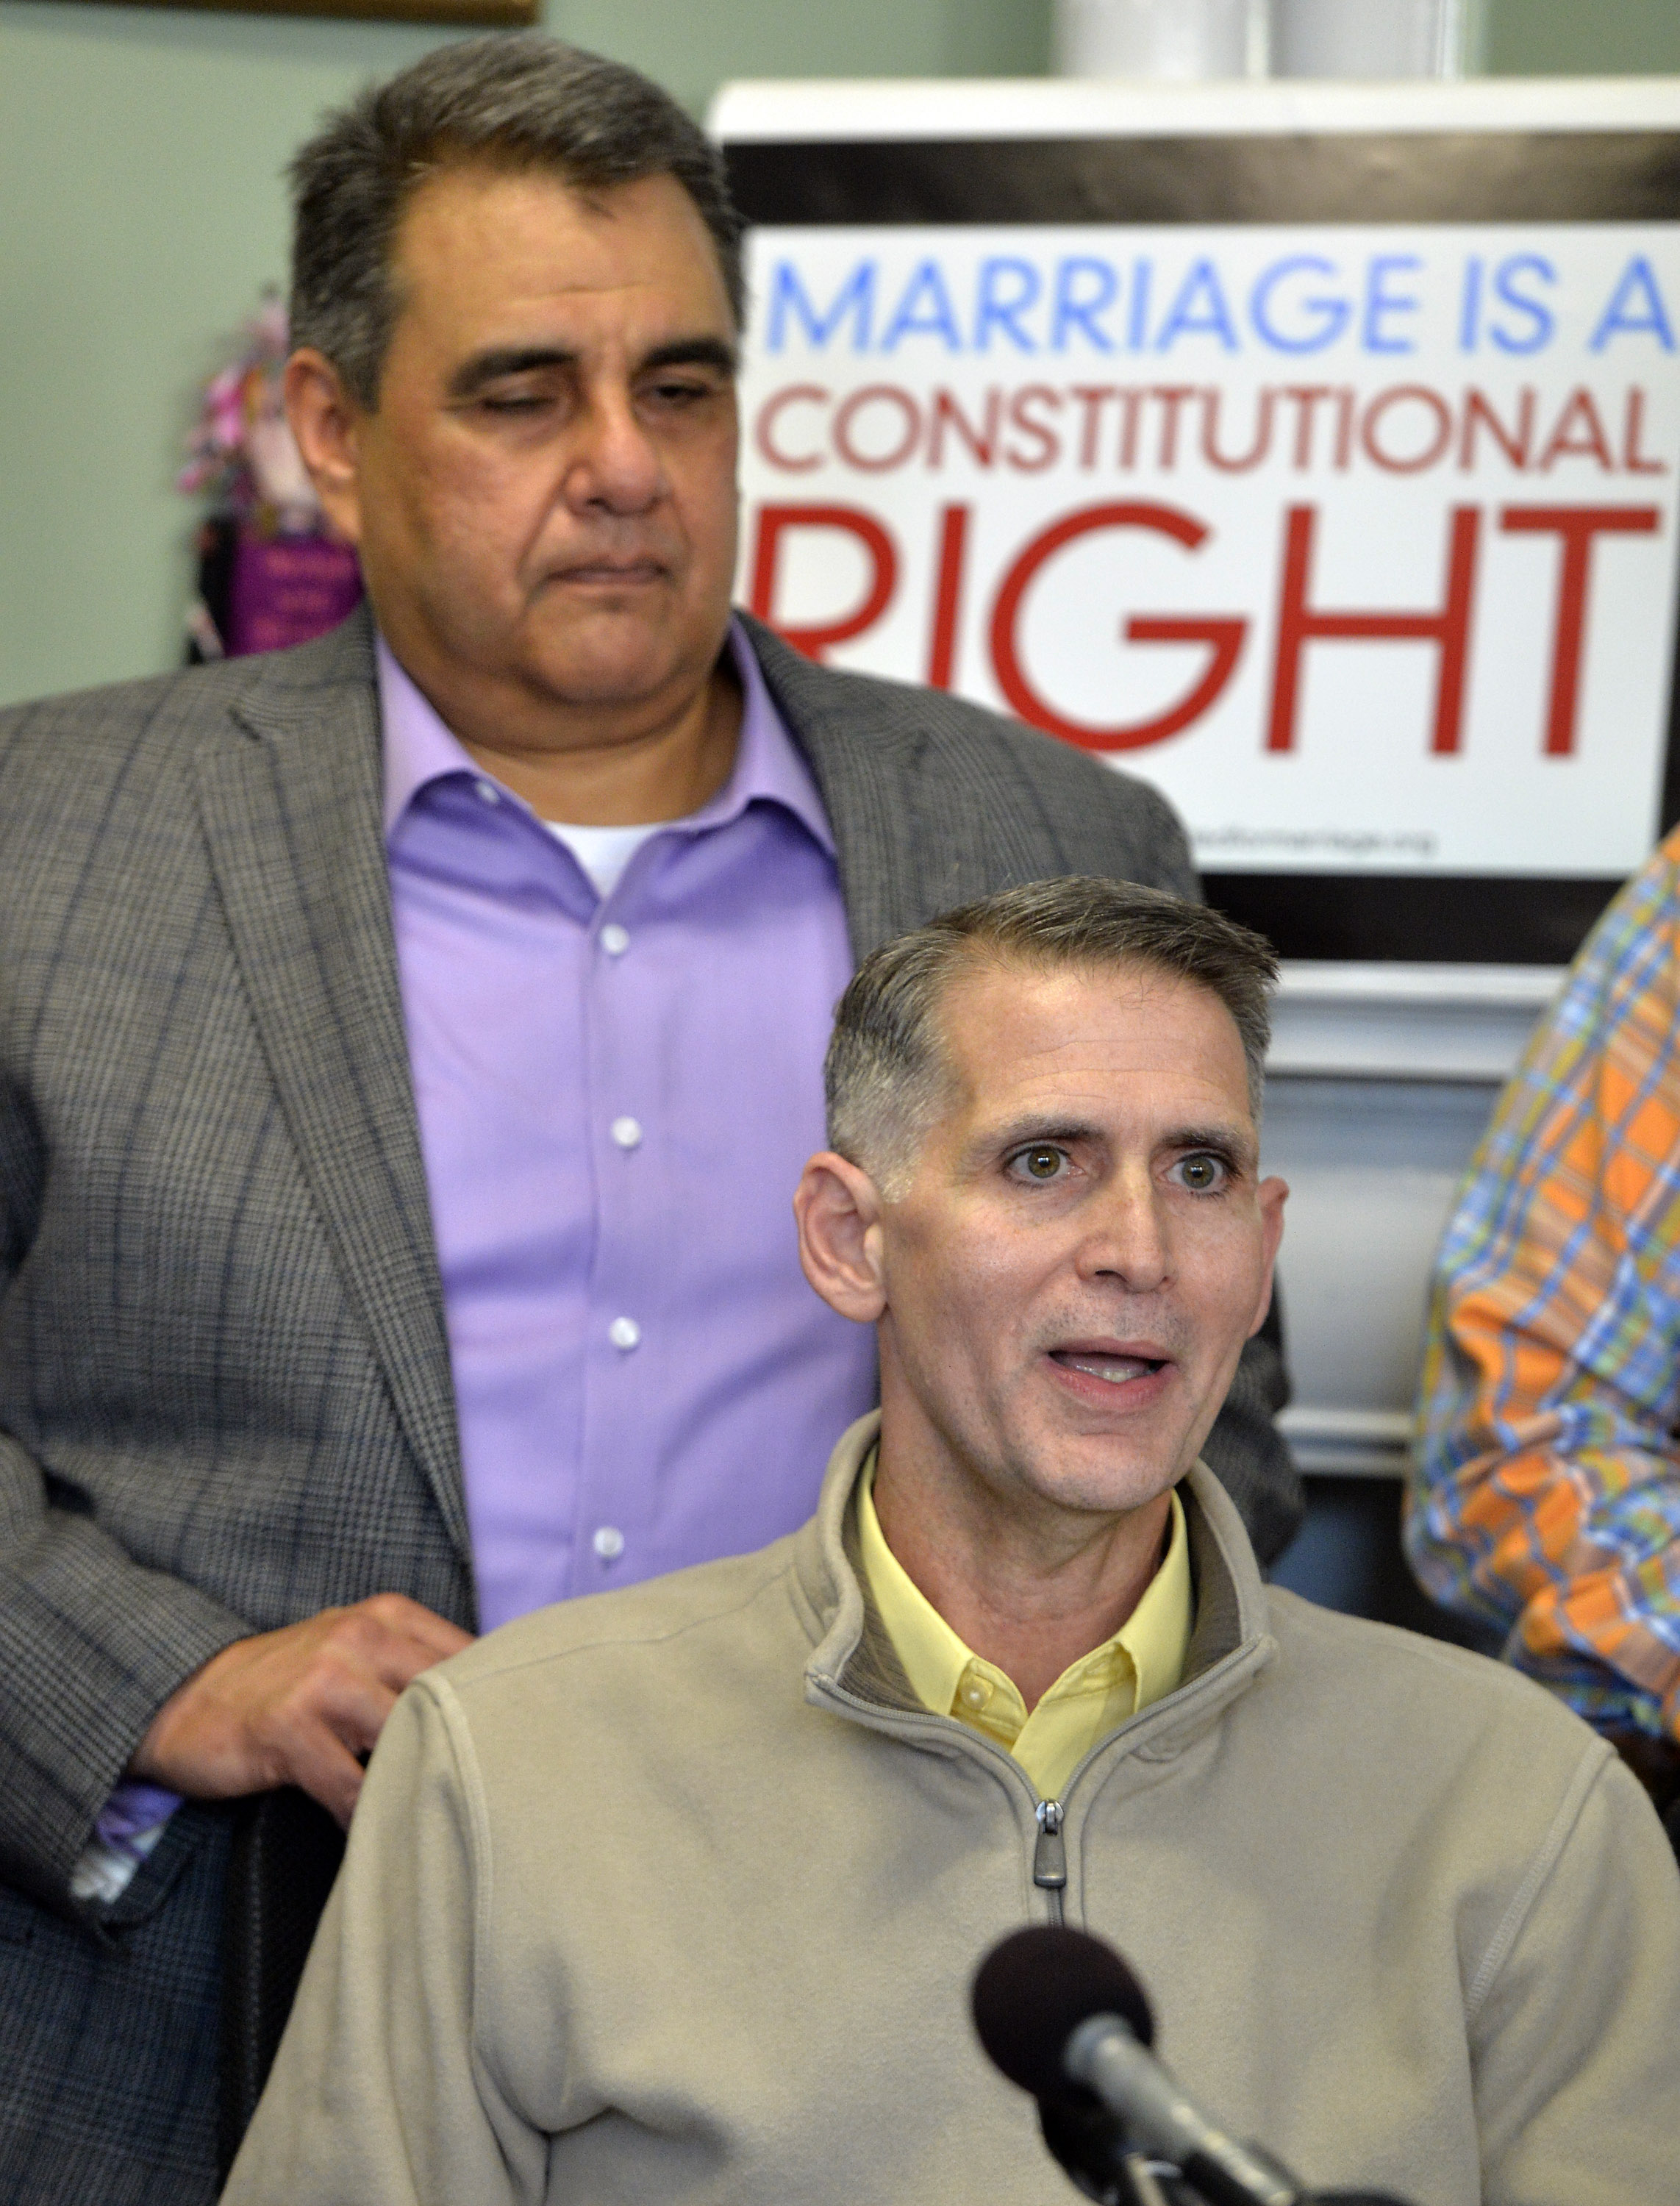 Greg Bourke, front, and his partner Michael Deleon speak to reporters following the announcement from U.S. District Judge John G. Heyburn striking down Kentucky's same-sex marriage ban Wednesday, Feb. 12, 2014, in Louisville, Ky.